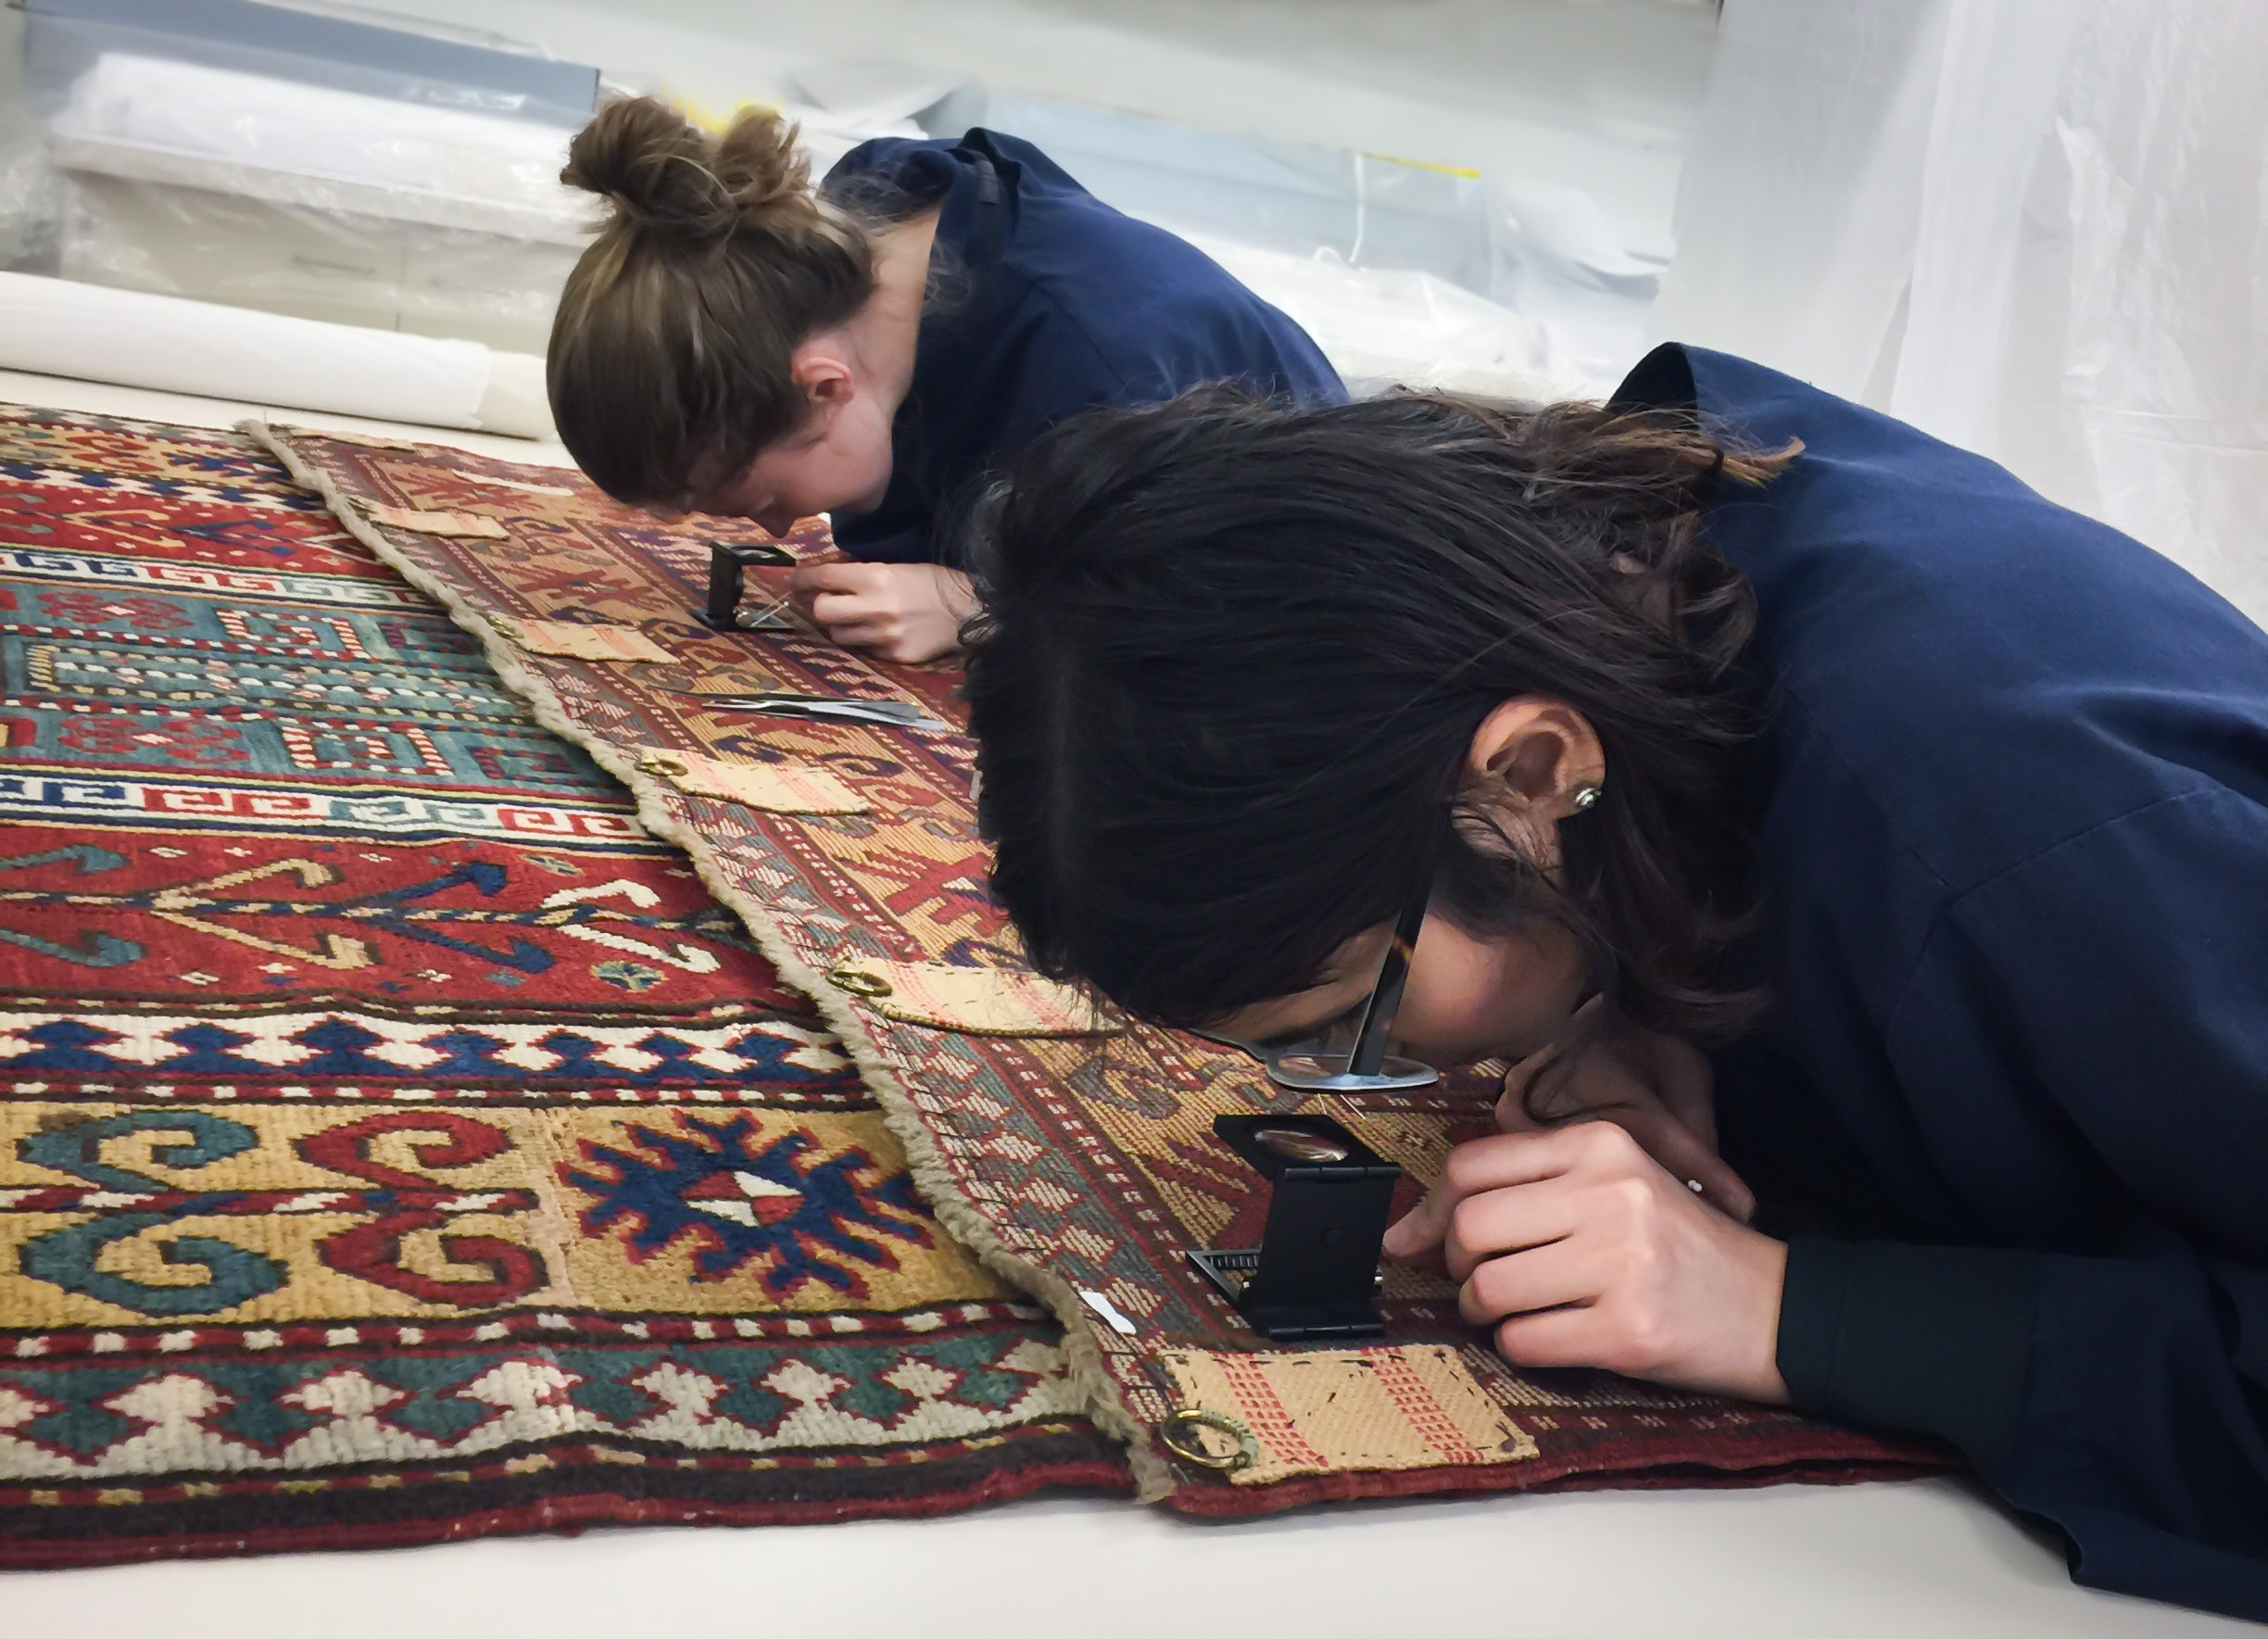 Two conservators work closely on a rug